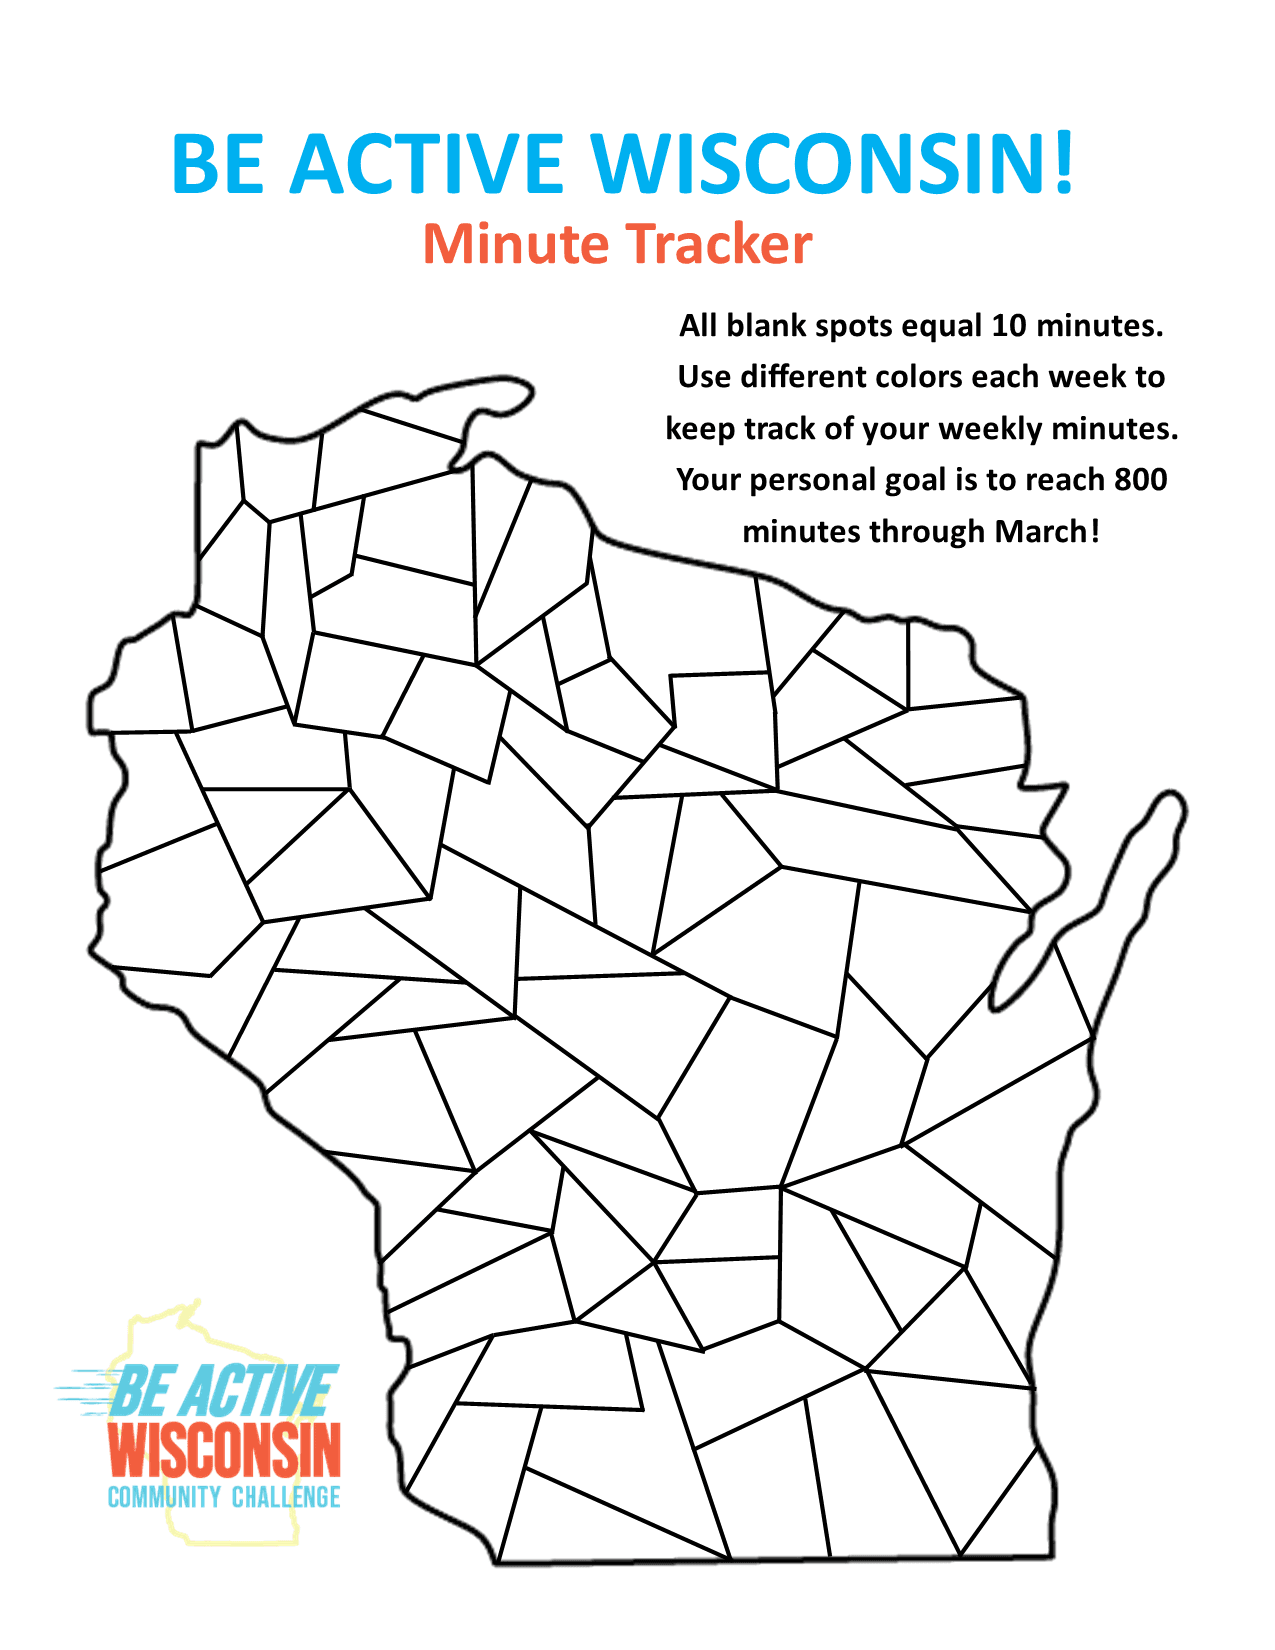 Be Active Minute Tracker Opens in new window